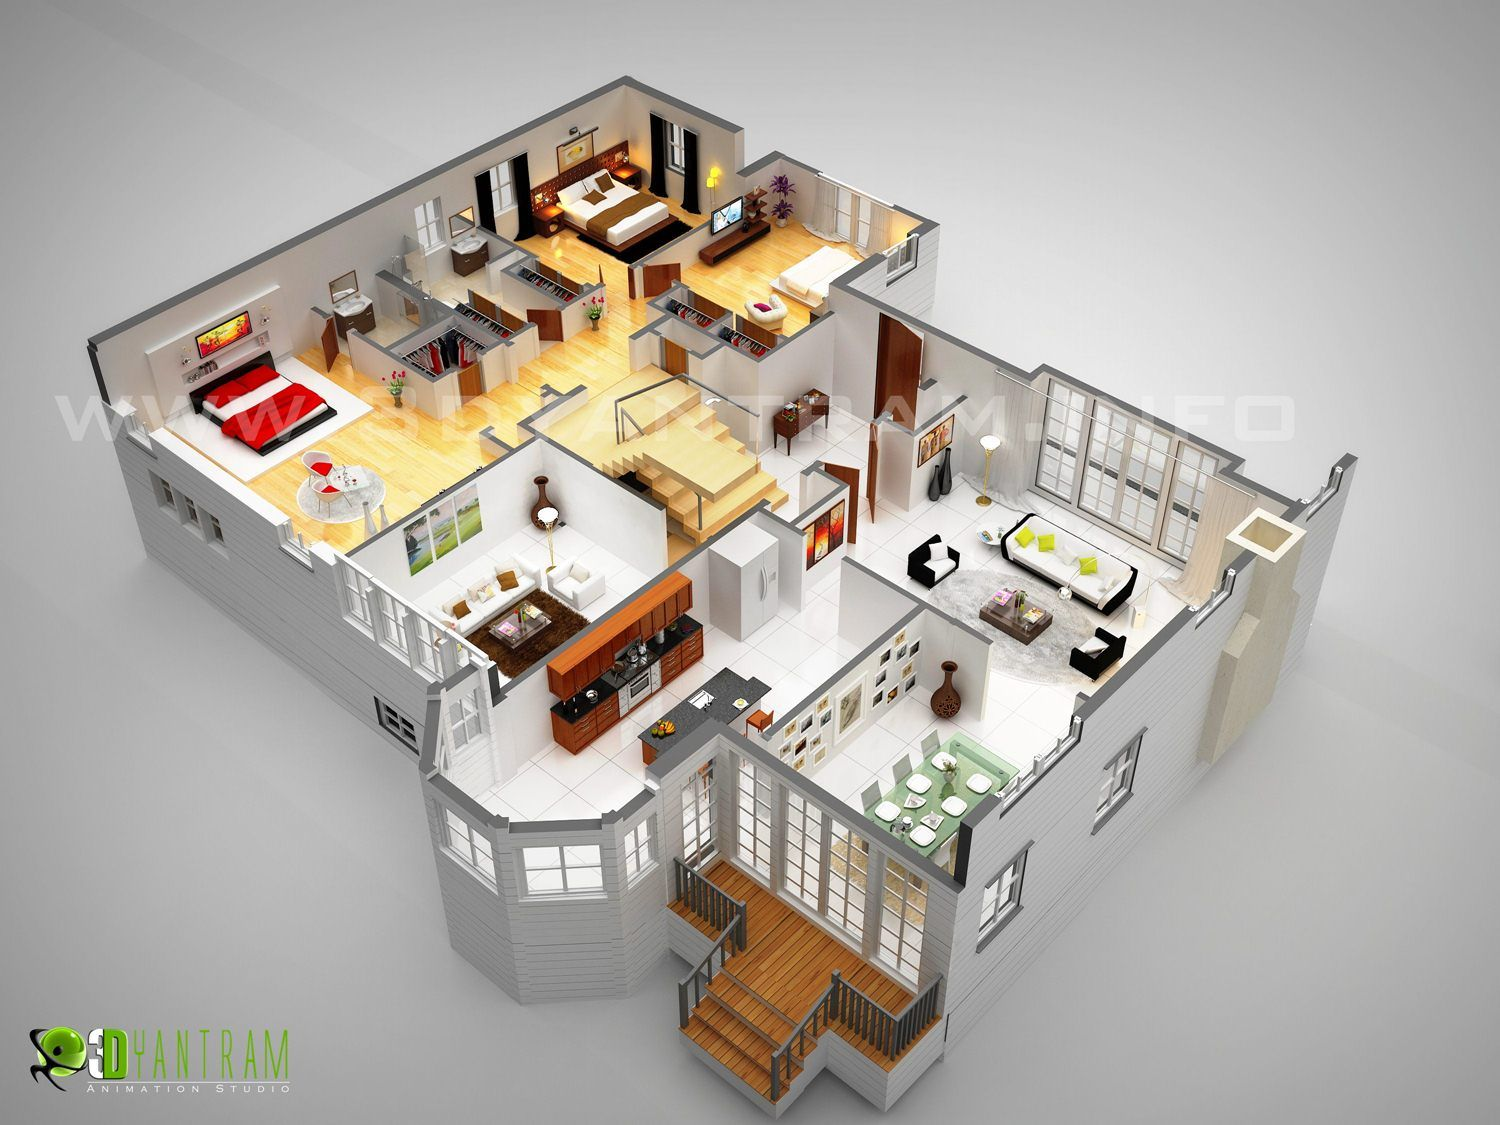 Laxurious residential 3d floor plan paris sims for Home plan 3d